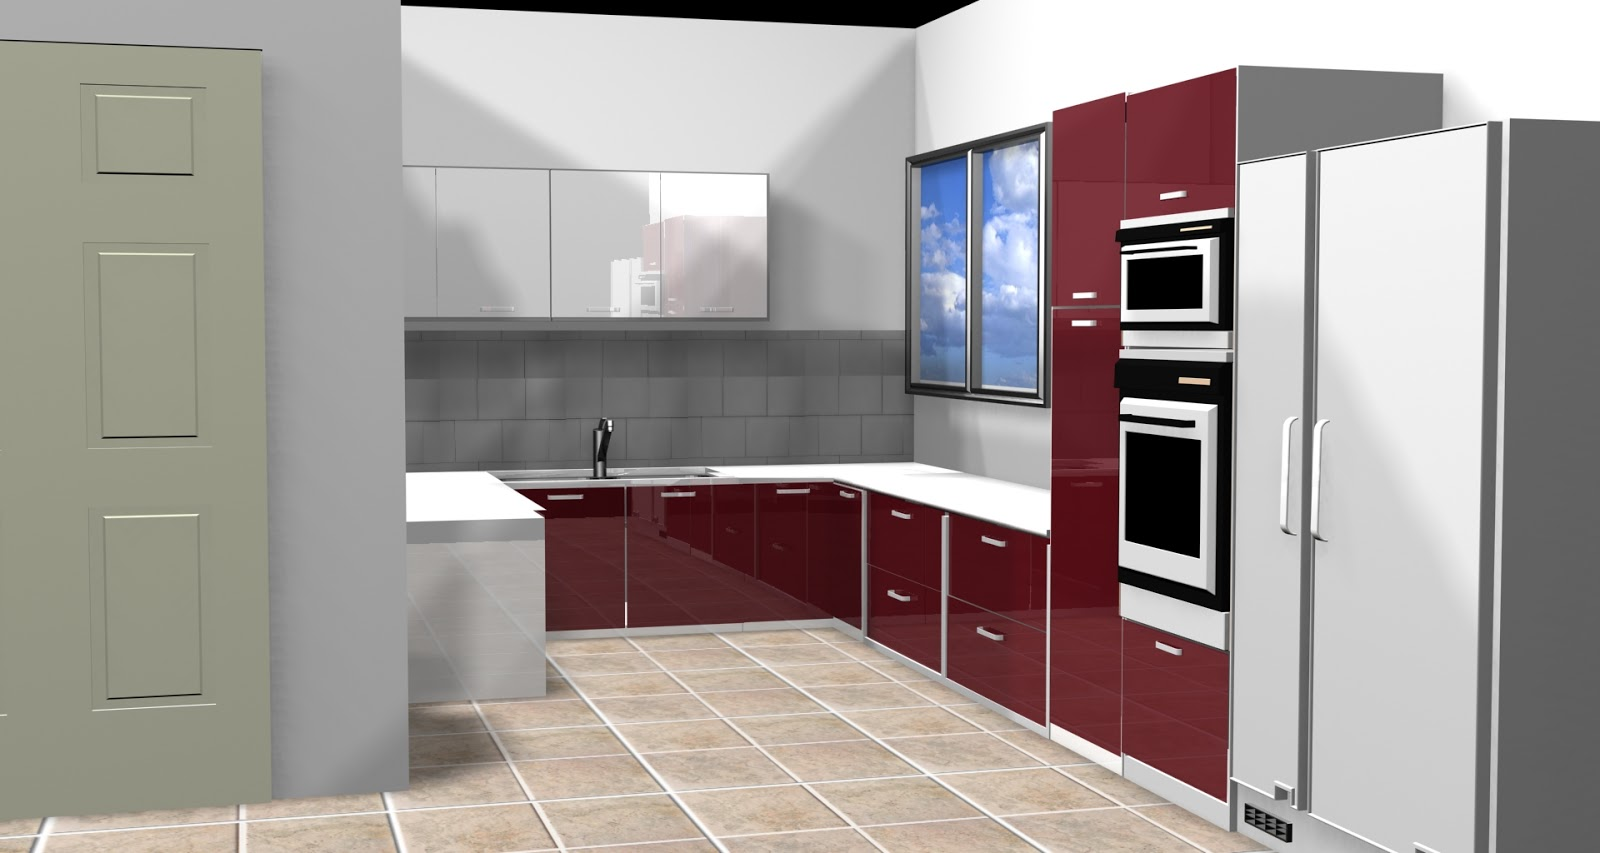 Charmant Vasant Kunj Kitchen Layout In 3Ds Max